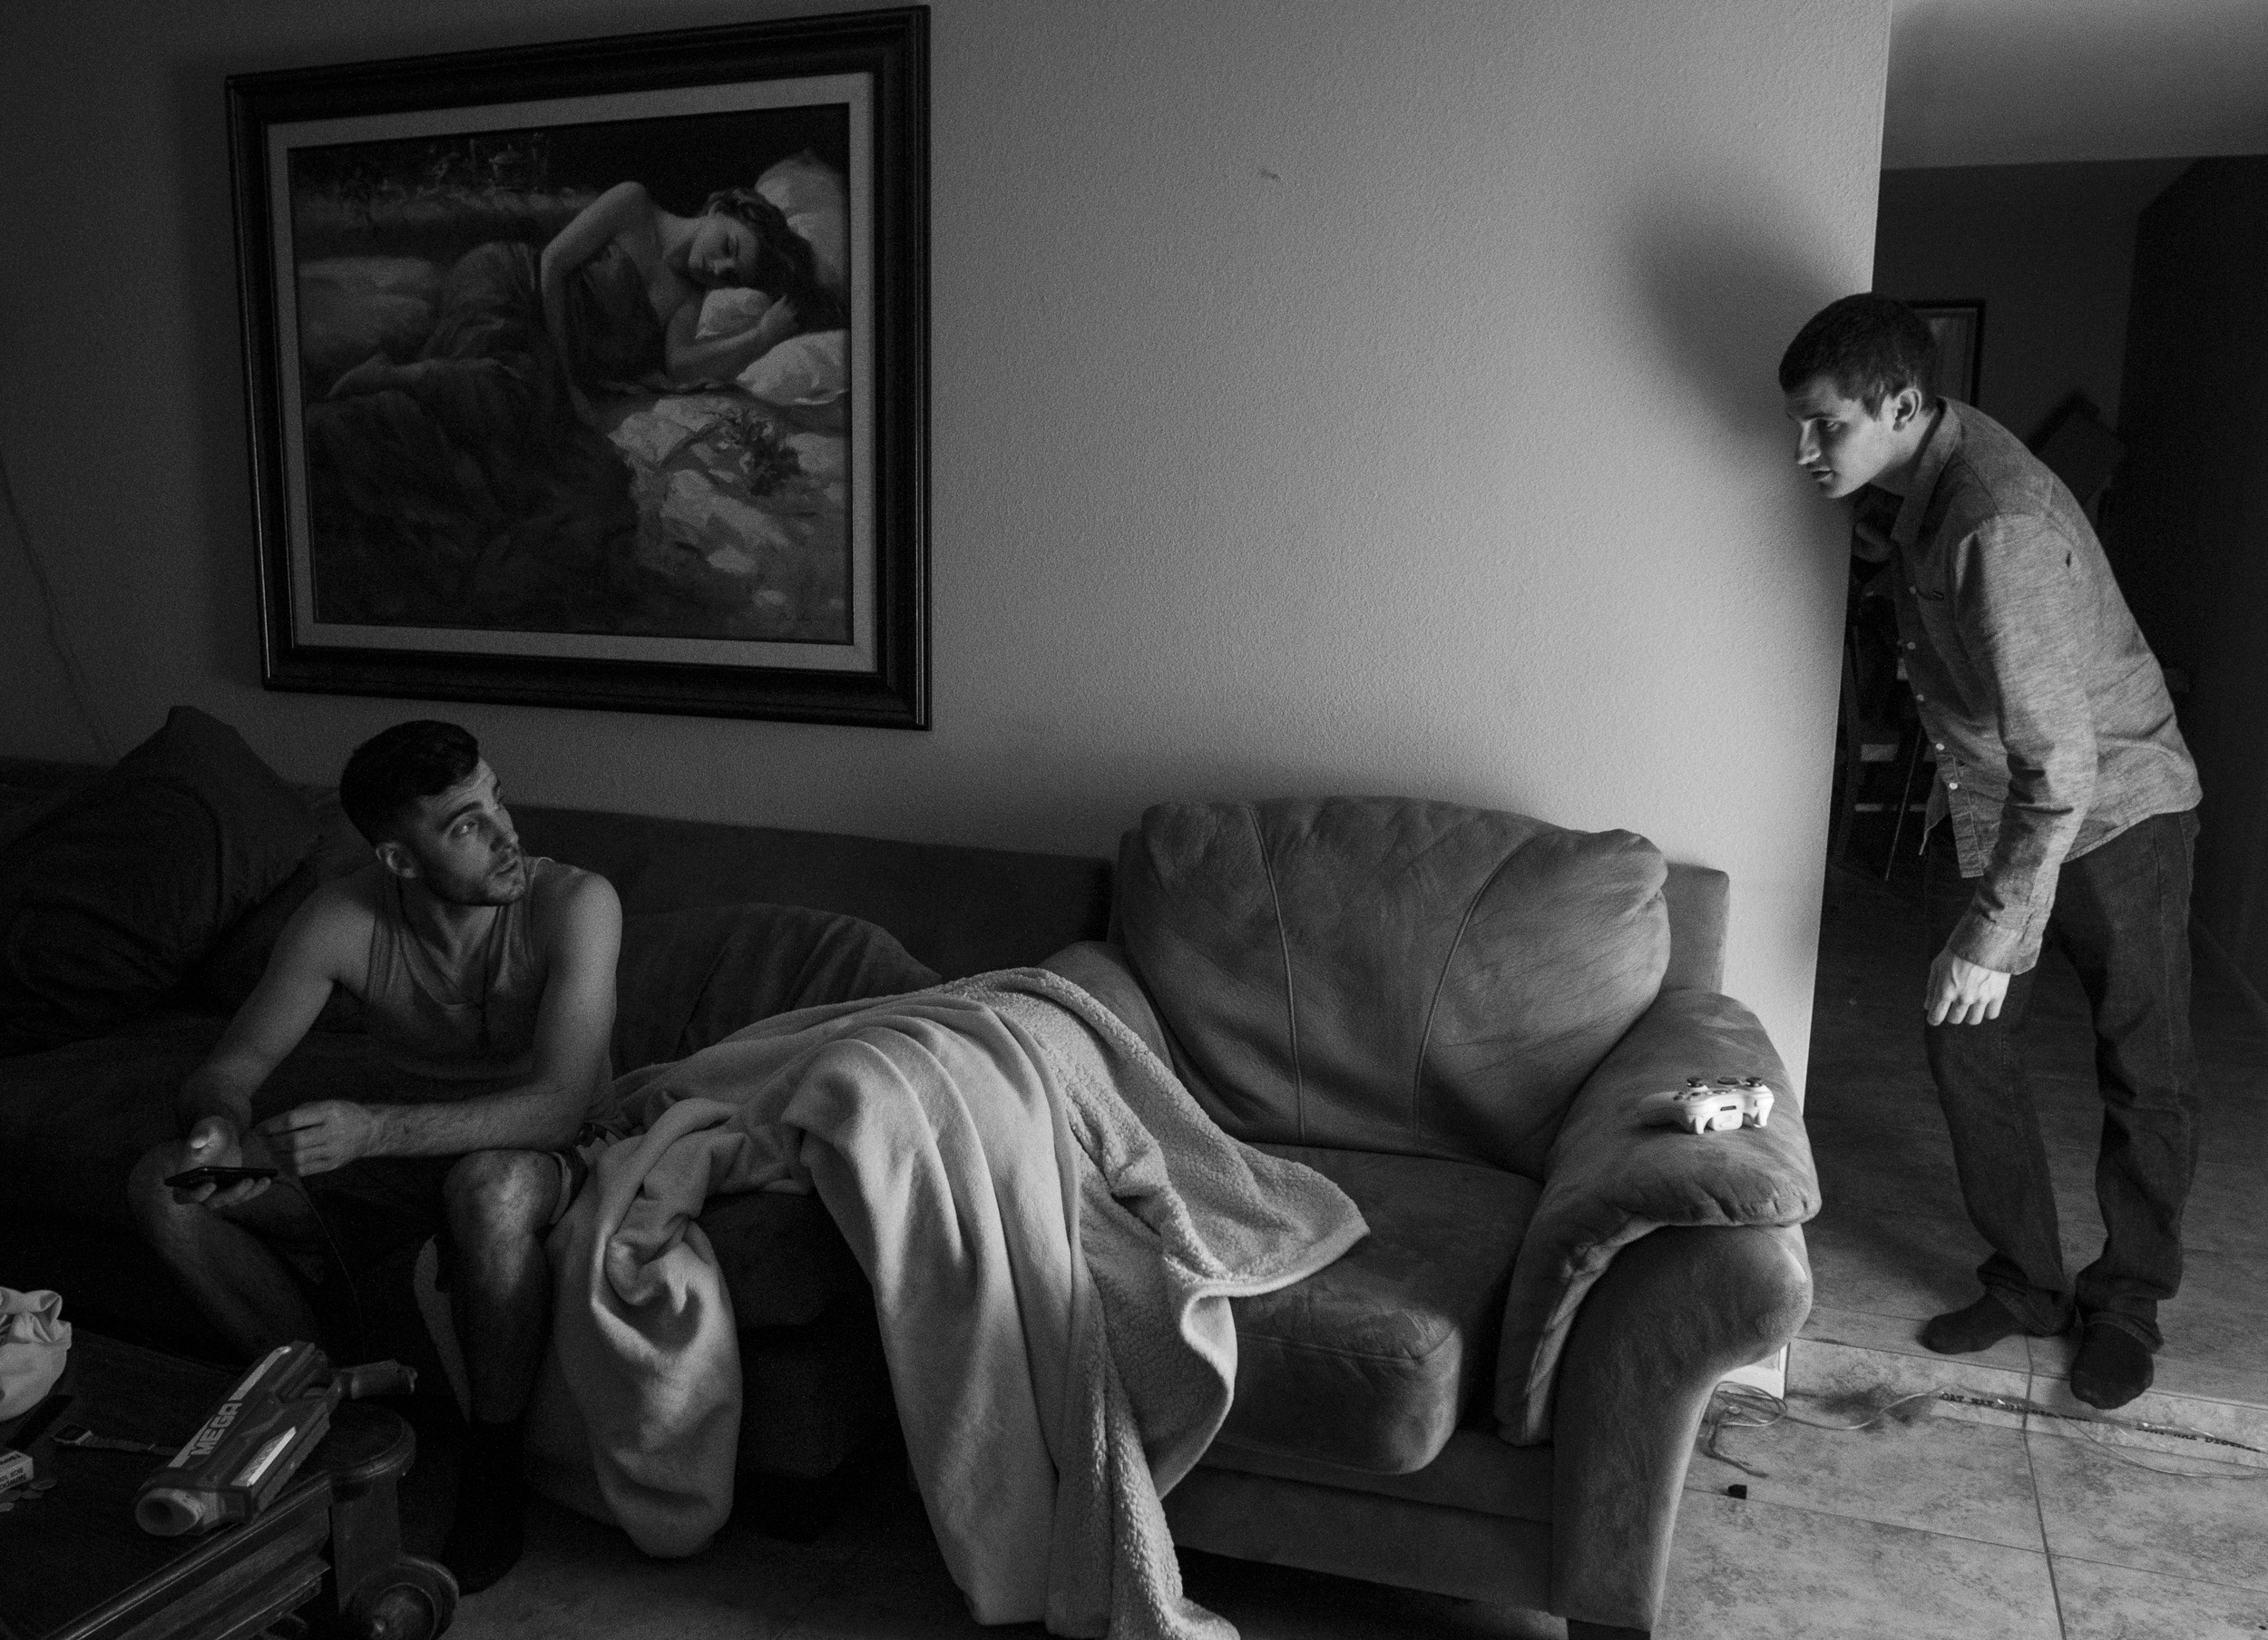 After Paul's friend Devin flushed the rest of the heroin, he let Paul spend the night at his house. Paul said that after he relapsed that Monday, he stayed at Dezarae's apartment during the week and admitted that he used every day.